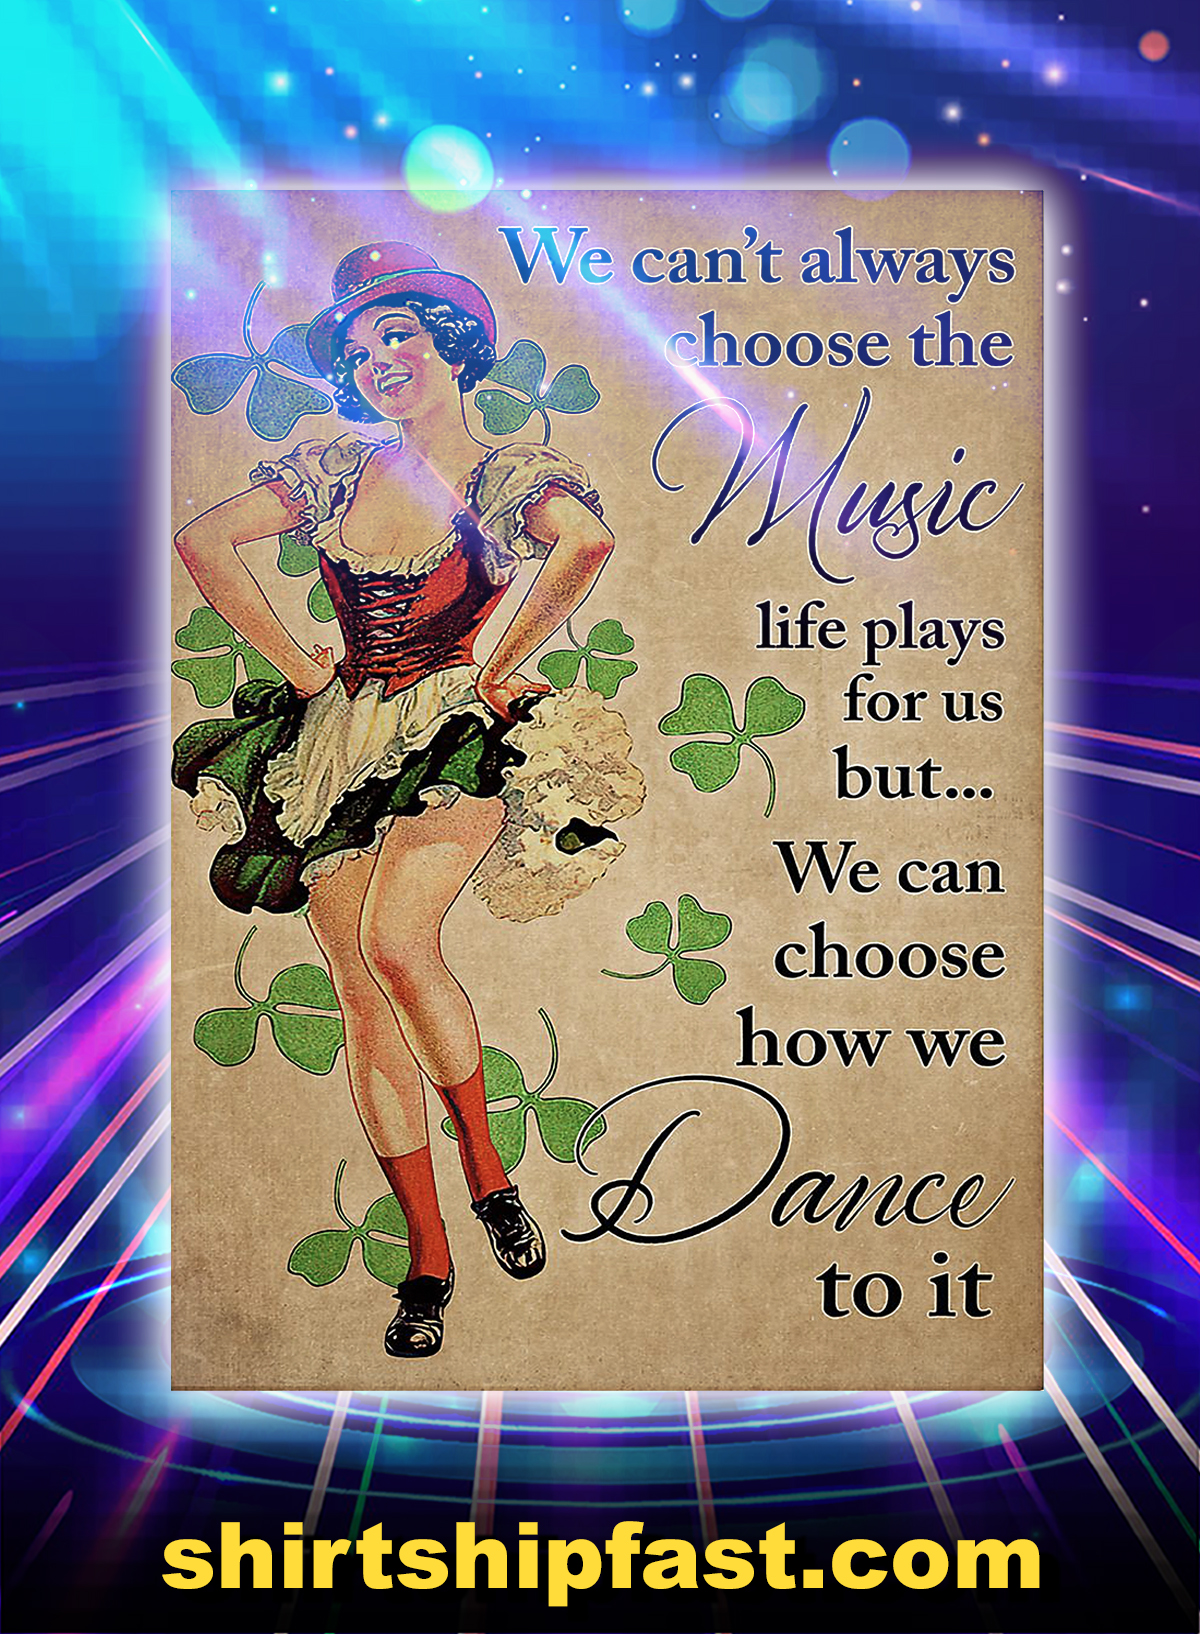 Irish dancing we can't always choose the music life plays for us poster - A4